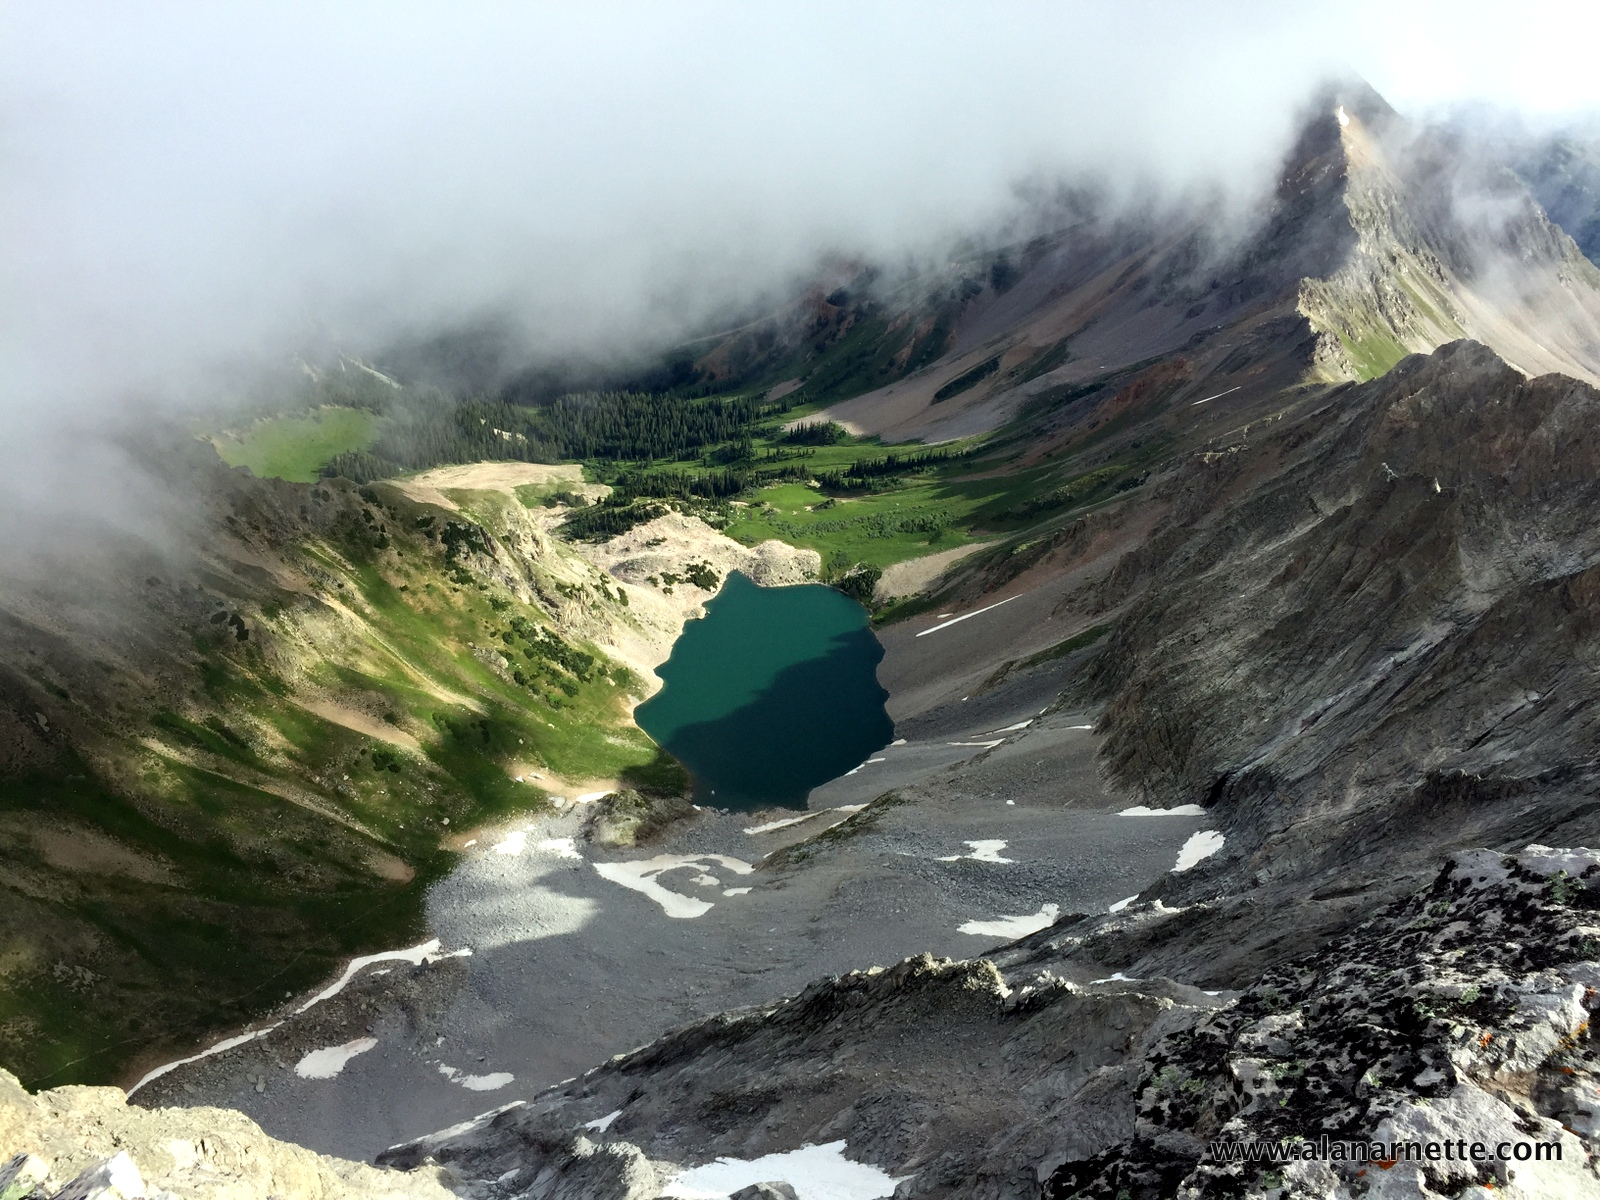 Capitol Lake from the summit. We camped nearby